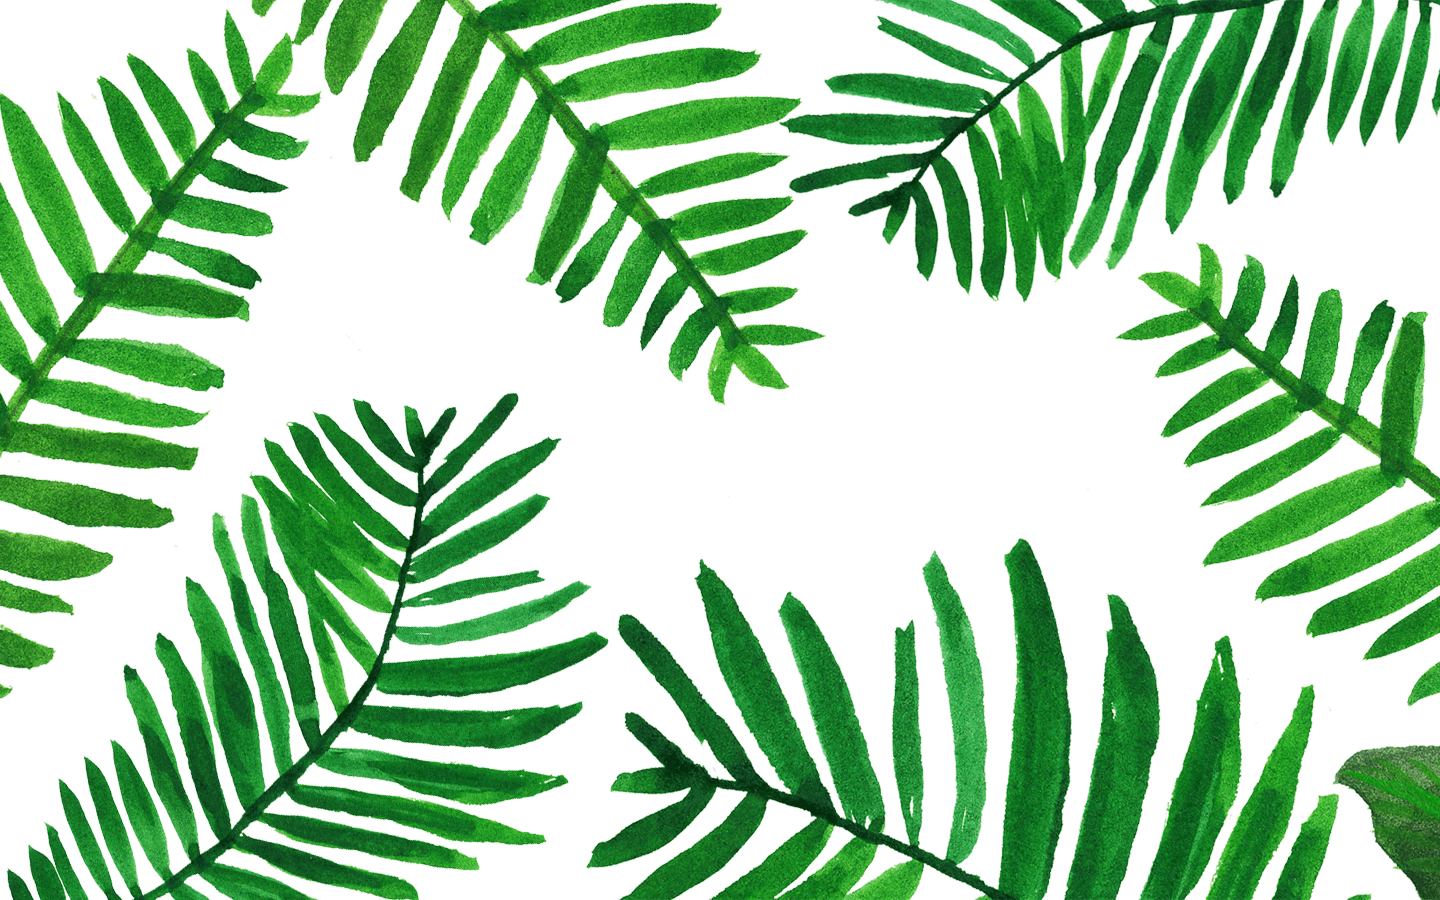 Palm Leaves Wallpapers Wallpaper Cave With tenor, maker of gif keyboard, add popular aesthetic animated gifs to your conversations. palm leaves wallpapers wallpaper cave